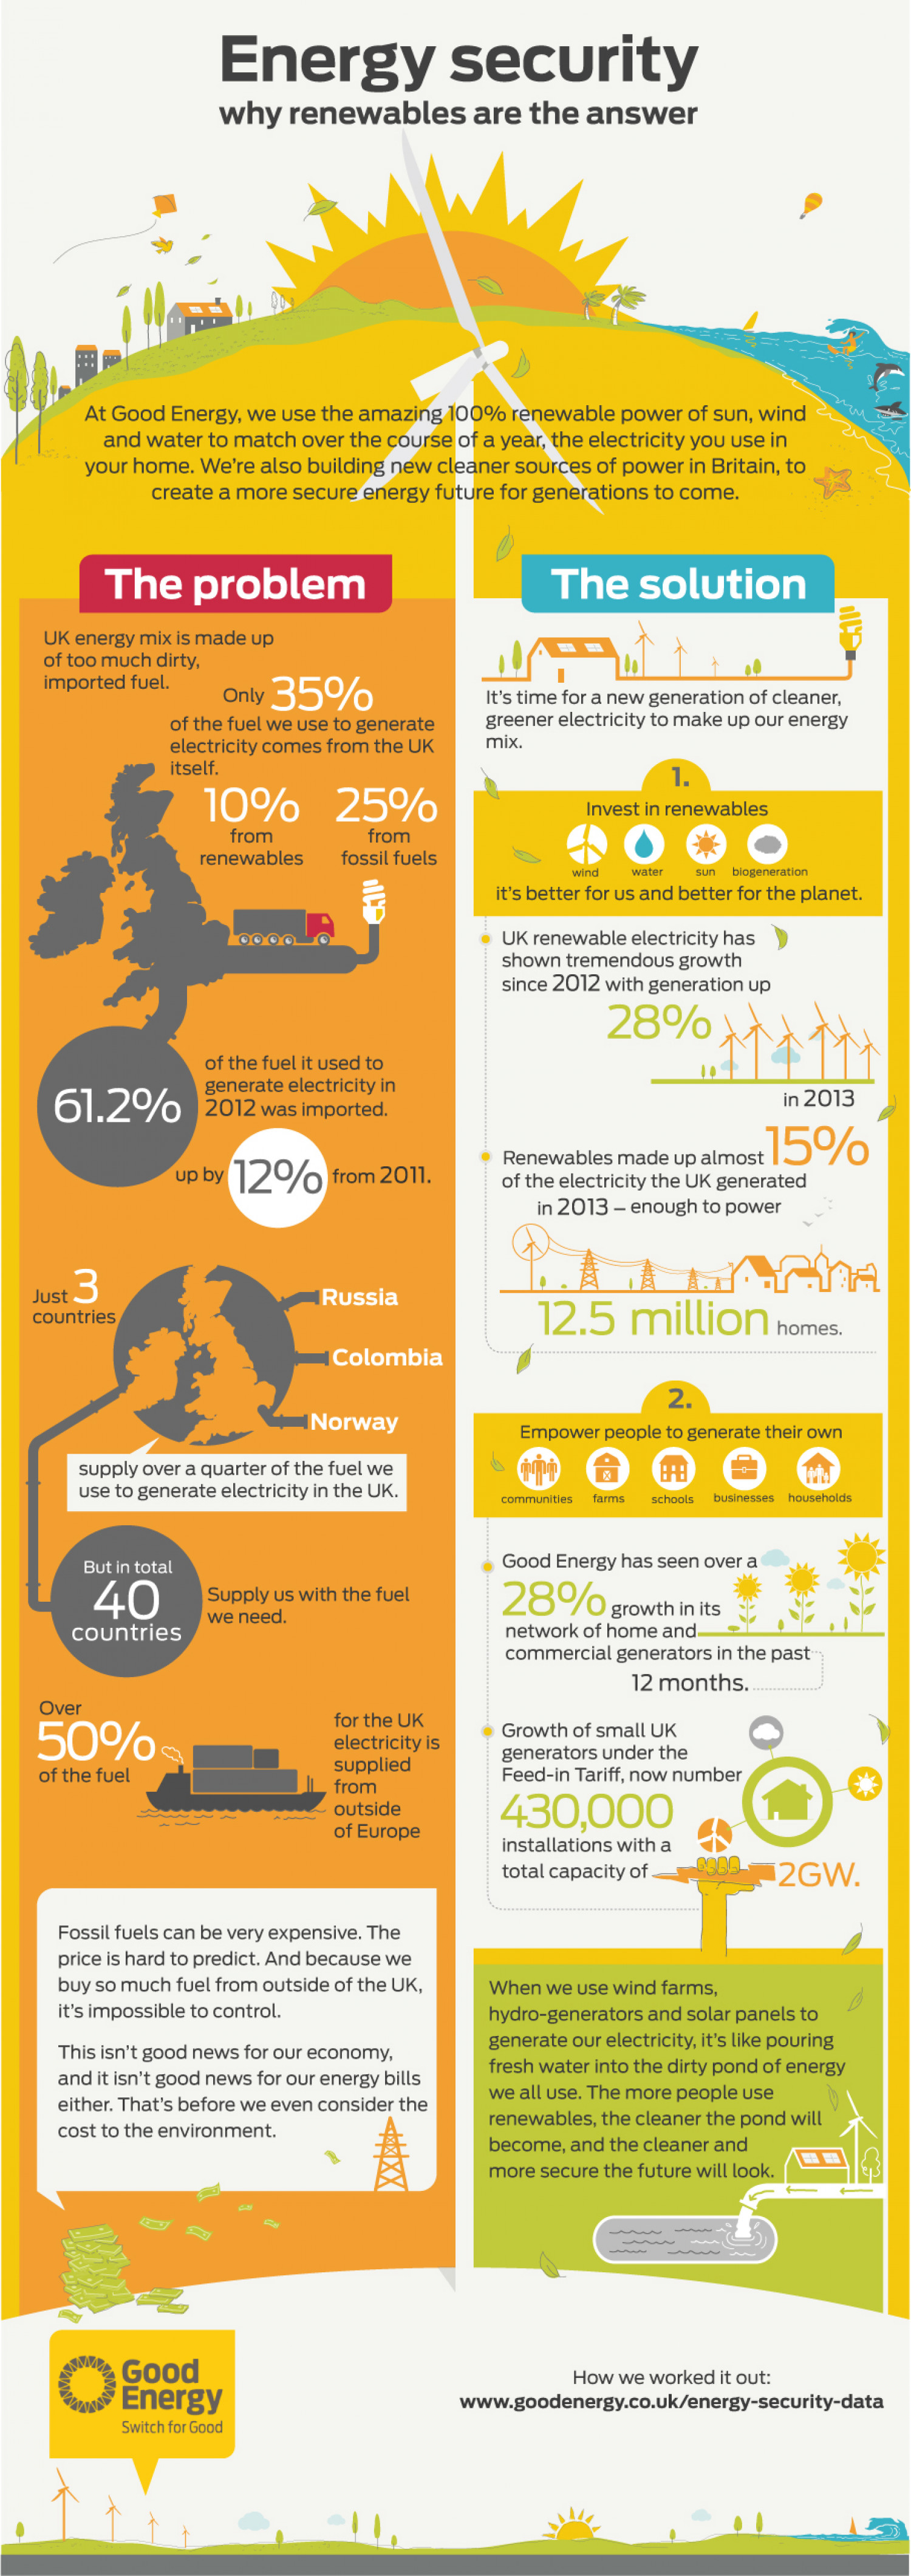 Energy Security - Why Renewables Are The Answer Infographic